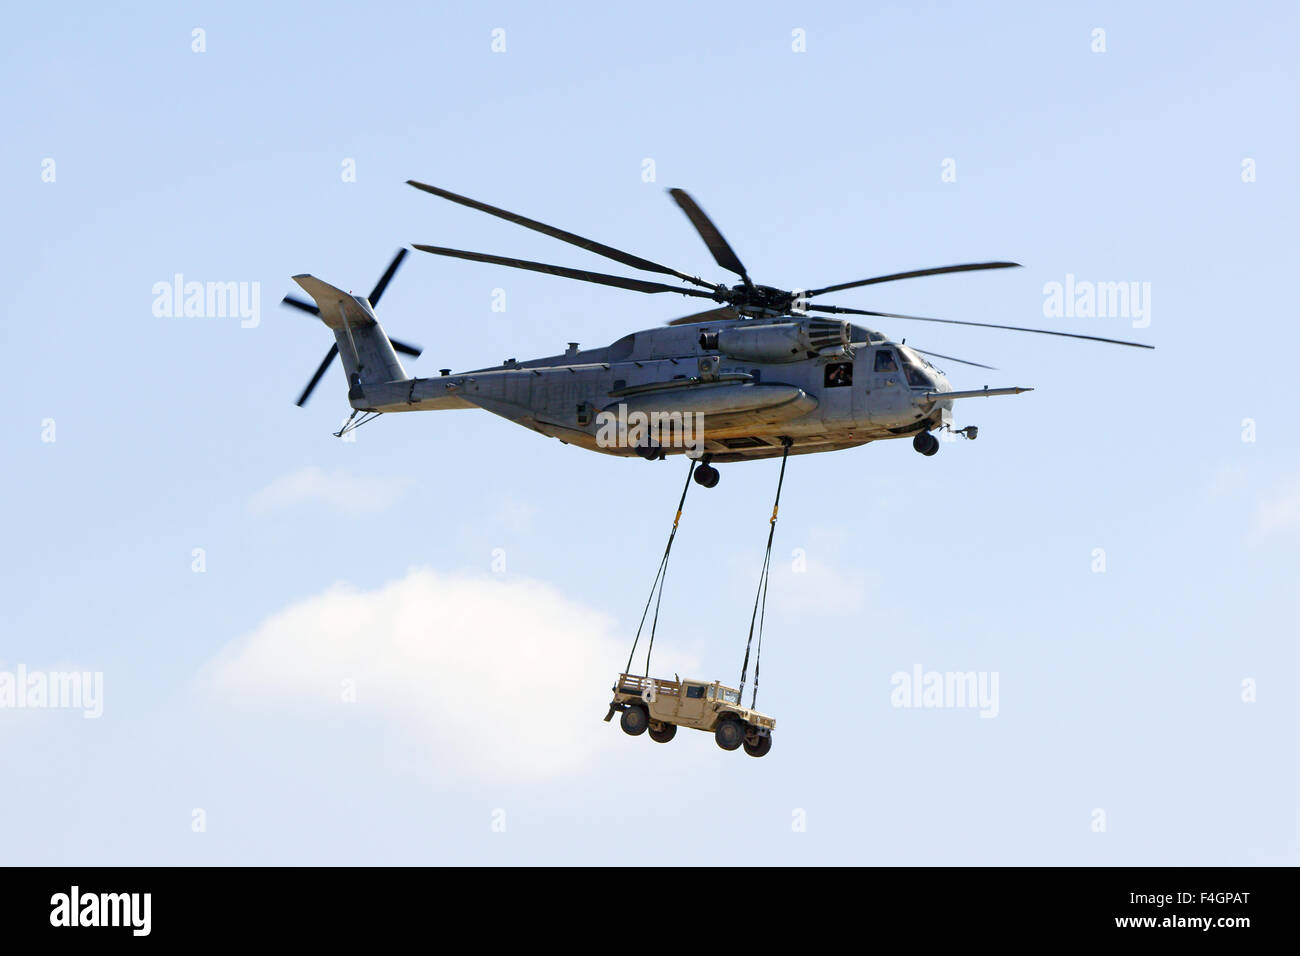 Helicopter CH-53 Super Stallion lifting a hummer vehicle at 2015 Air Show - Stock Image